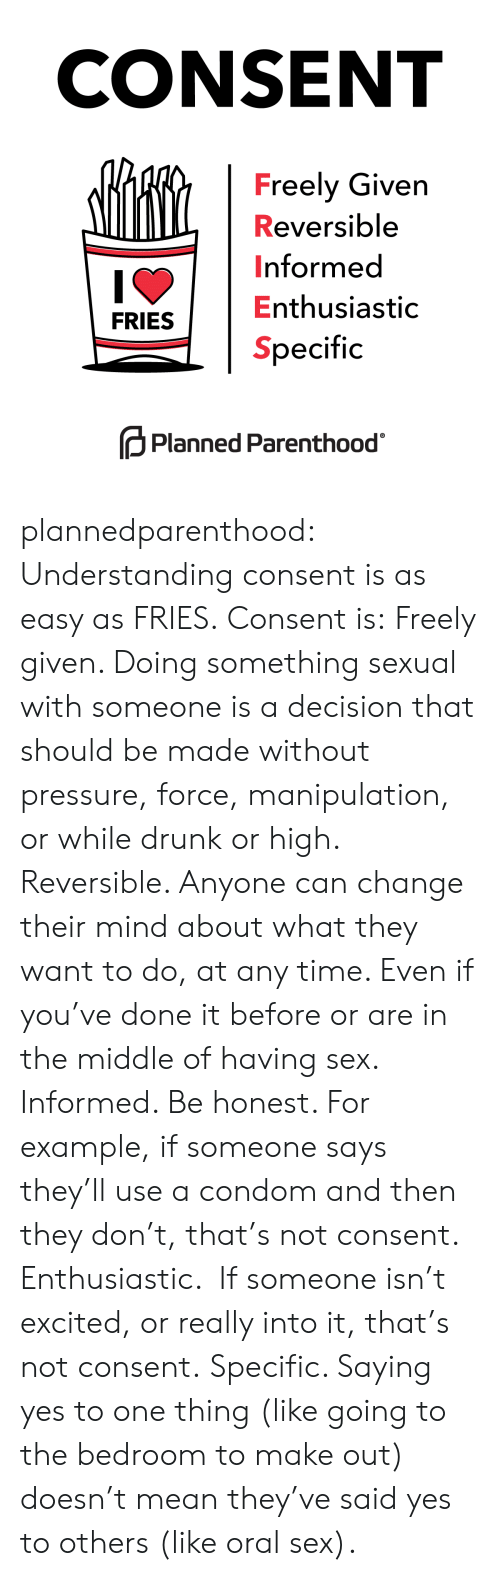 Condom, Drunk, and Pressure: CONSENT  Freely Given  Reversible  Informed  Enthusiastic  Specific  FRIESE  Planned Parenthood plannedparenthood:  Understanding consent is as easy as FRIES.  Consent is:  Freely given. Doing something sexual with someone is a decision that should be made without pressure, force, manipulation, or while drunk or high.  Reversible. Anyone can change their mind about what they want to do, at any time. Even if you've done it before or are in the middle of having sex.  Informed. Be honest. For example, if someone says they'll use a condom and then they don't, that's not consent.  Enthusiastic.  If someone isn't excited, or really into it, that's not consent.  Specific. Saying yes to one thing (like going to the bedroom to make out) doesn't mean they've said yes to others (like oral sex).